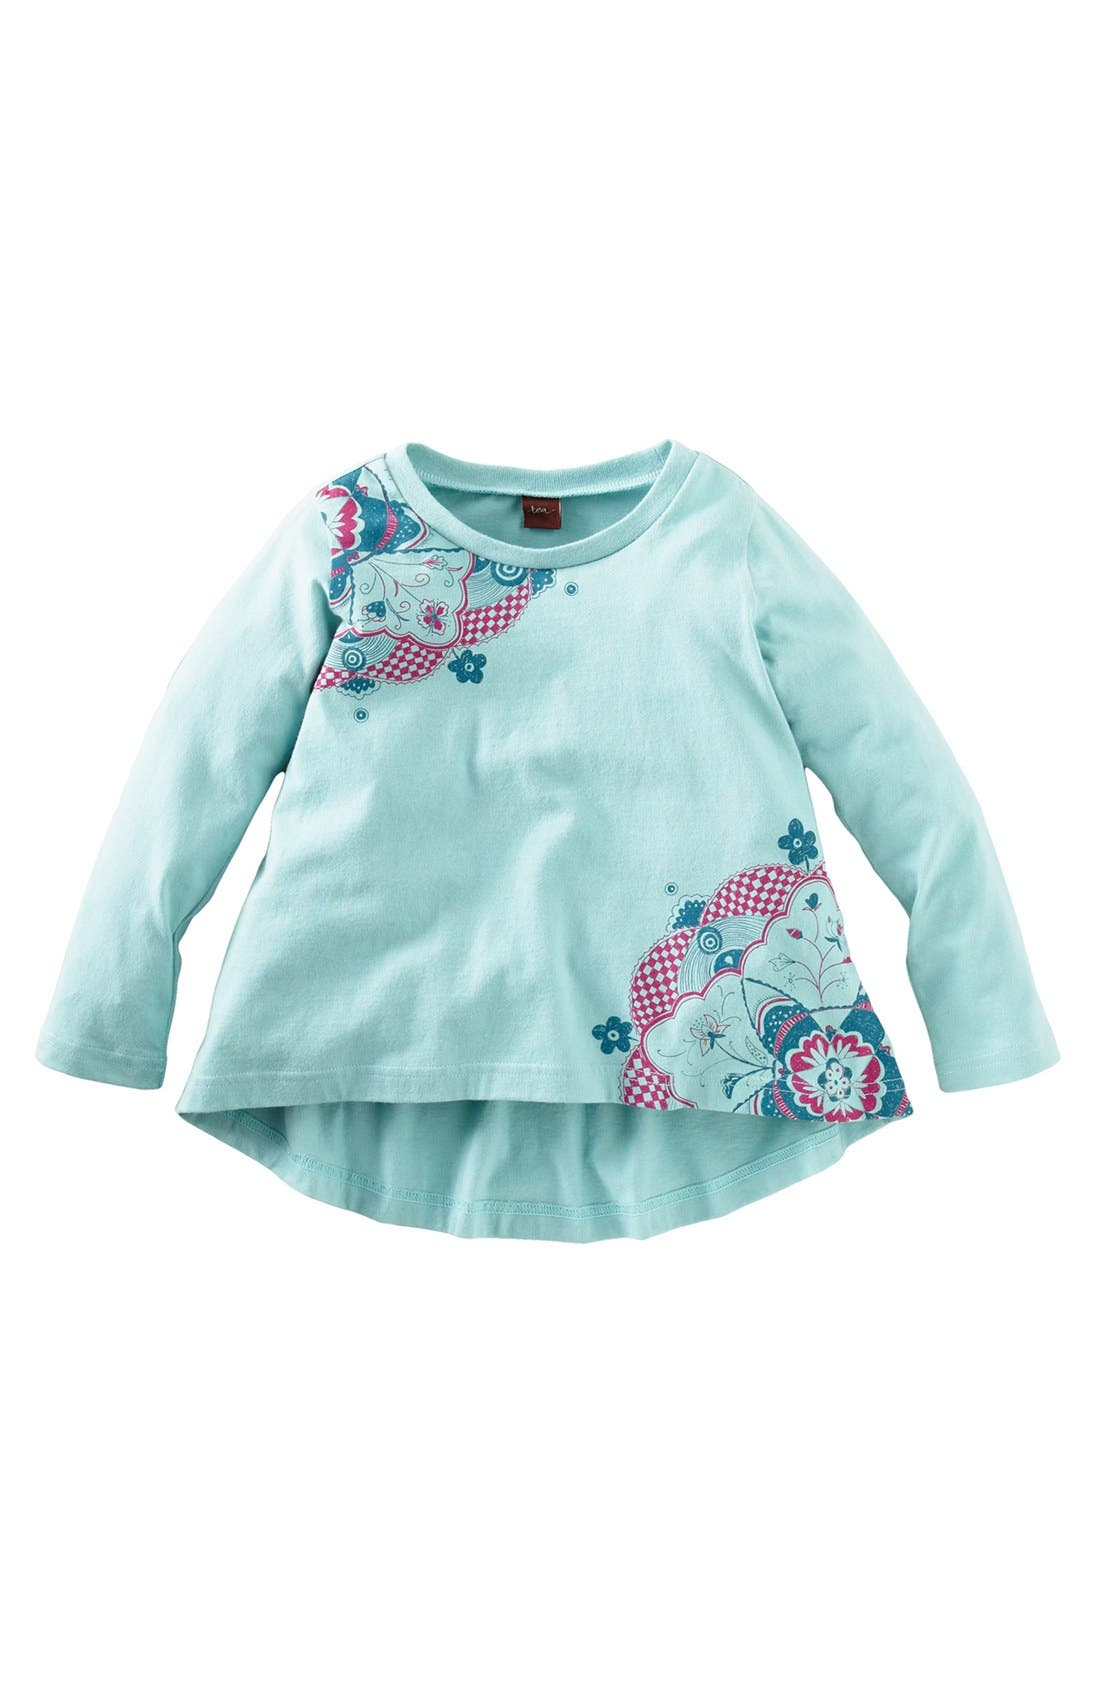 Alternate Image 1 Selected - Tea Collection 'Love Bird' High/Low Top (Little Girls & Big Girls)